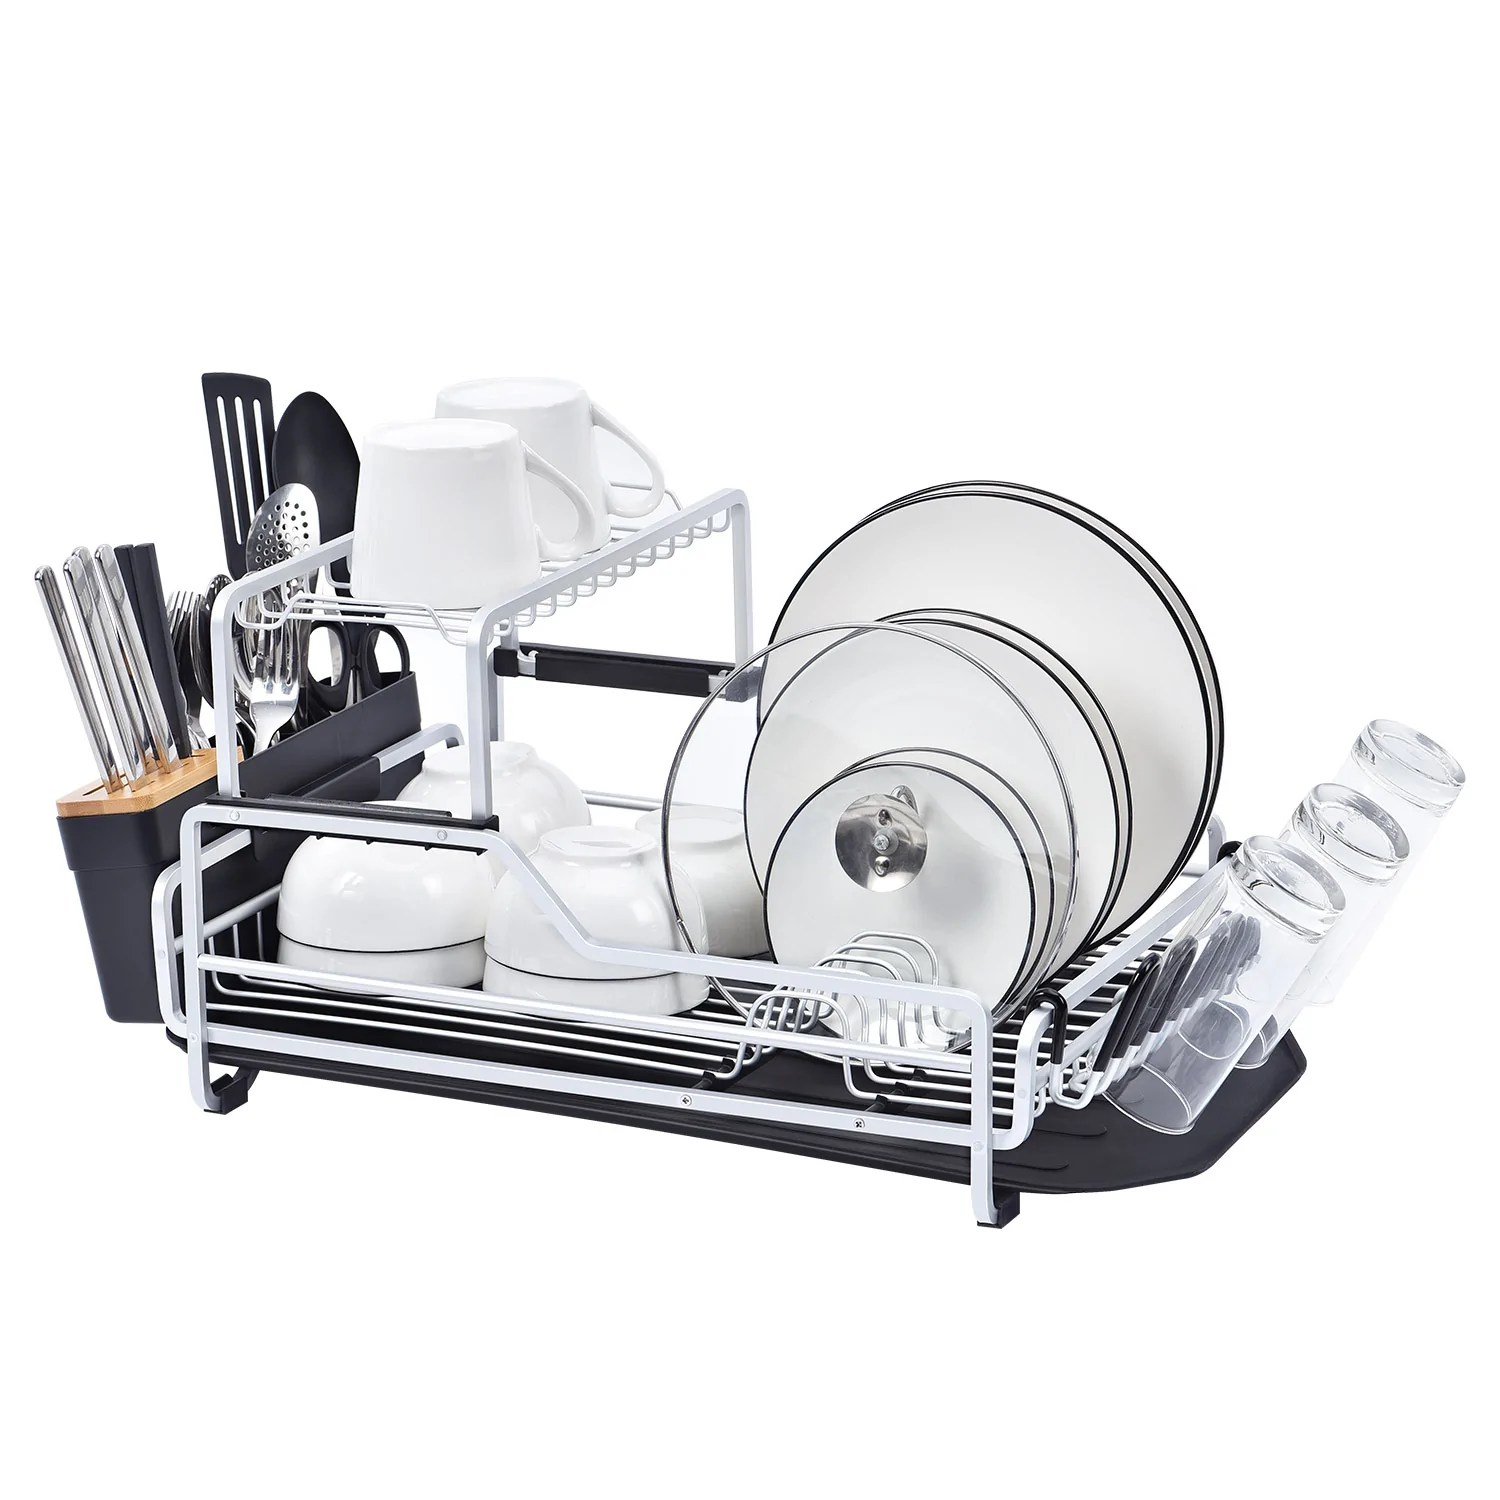 2 tier xxl aluminum dish drying rack with drain board customizable dish holder set with removable top shelf wk112099